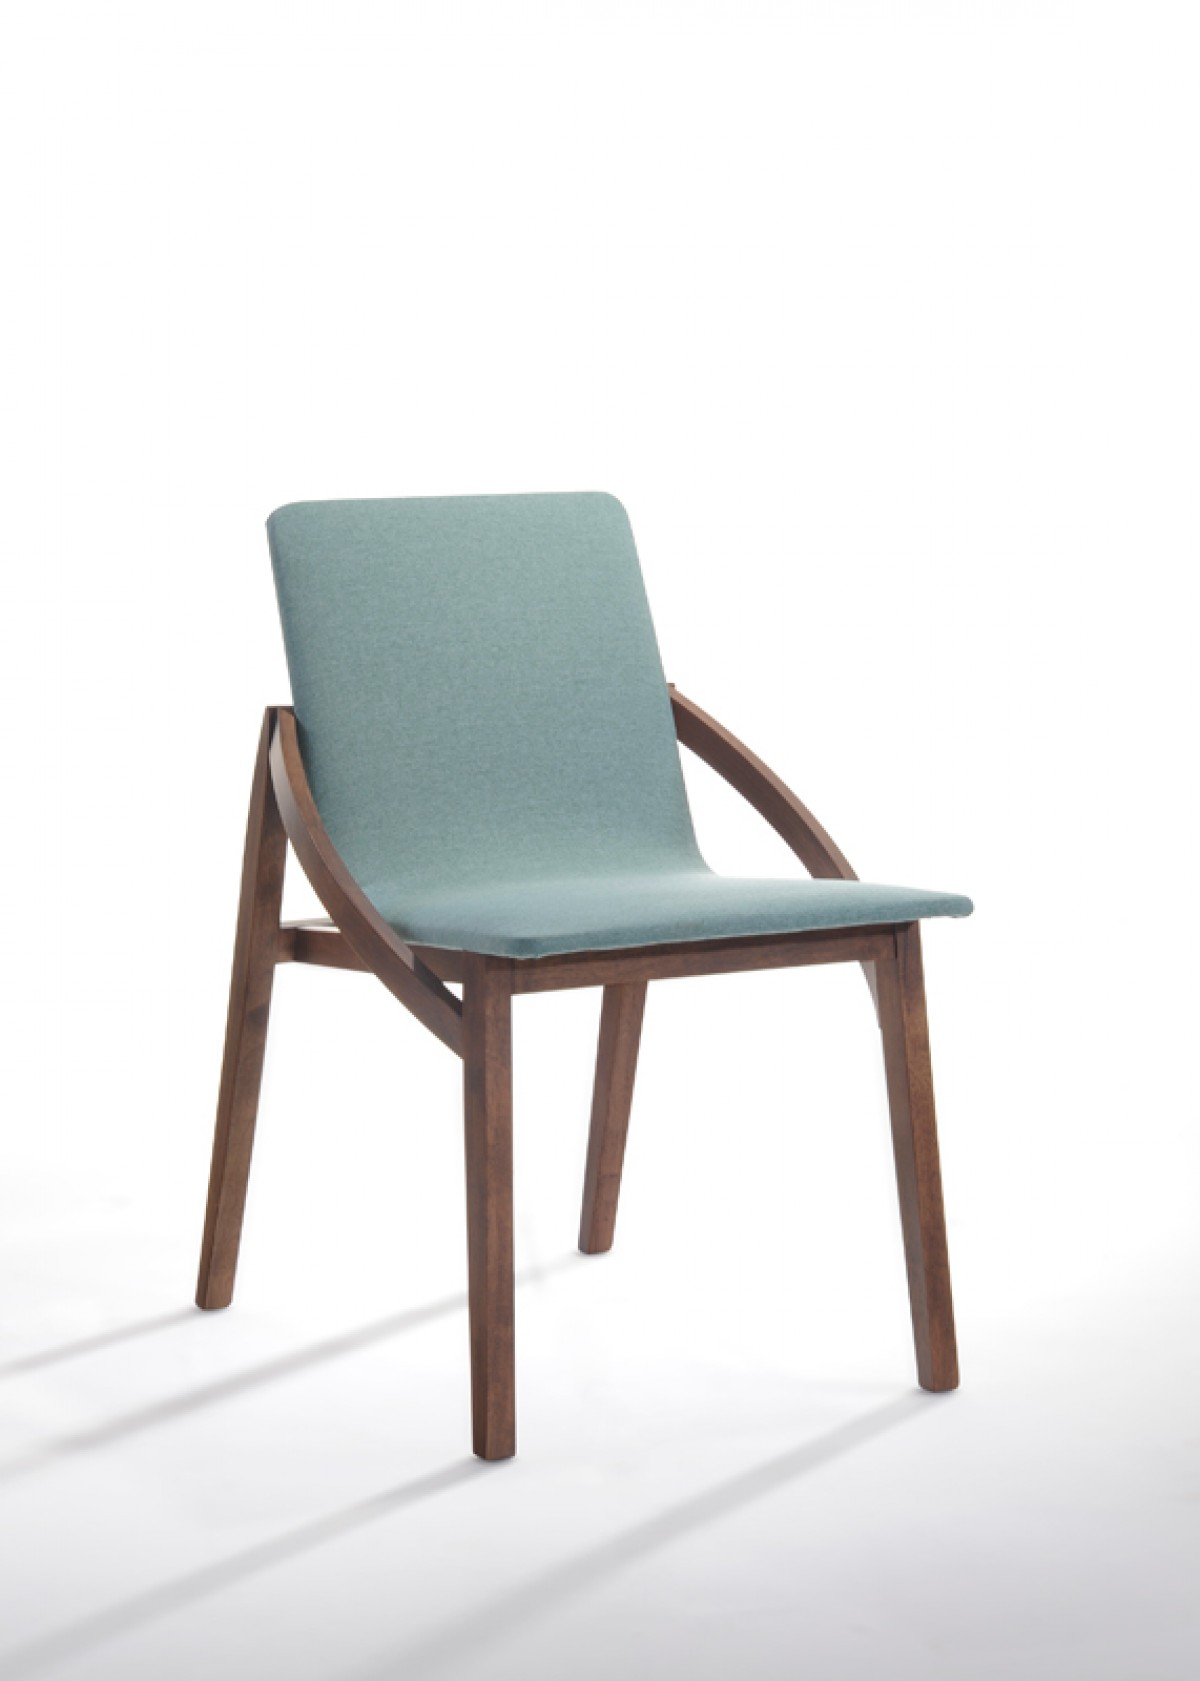 Modrest Jett Modern Blue Fabric Dining Chair Timeless  : mi 320 blue from vigfurniture.com size 1200 x 1681 jpeg 101kB